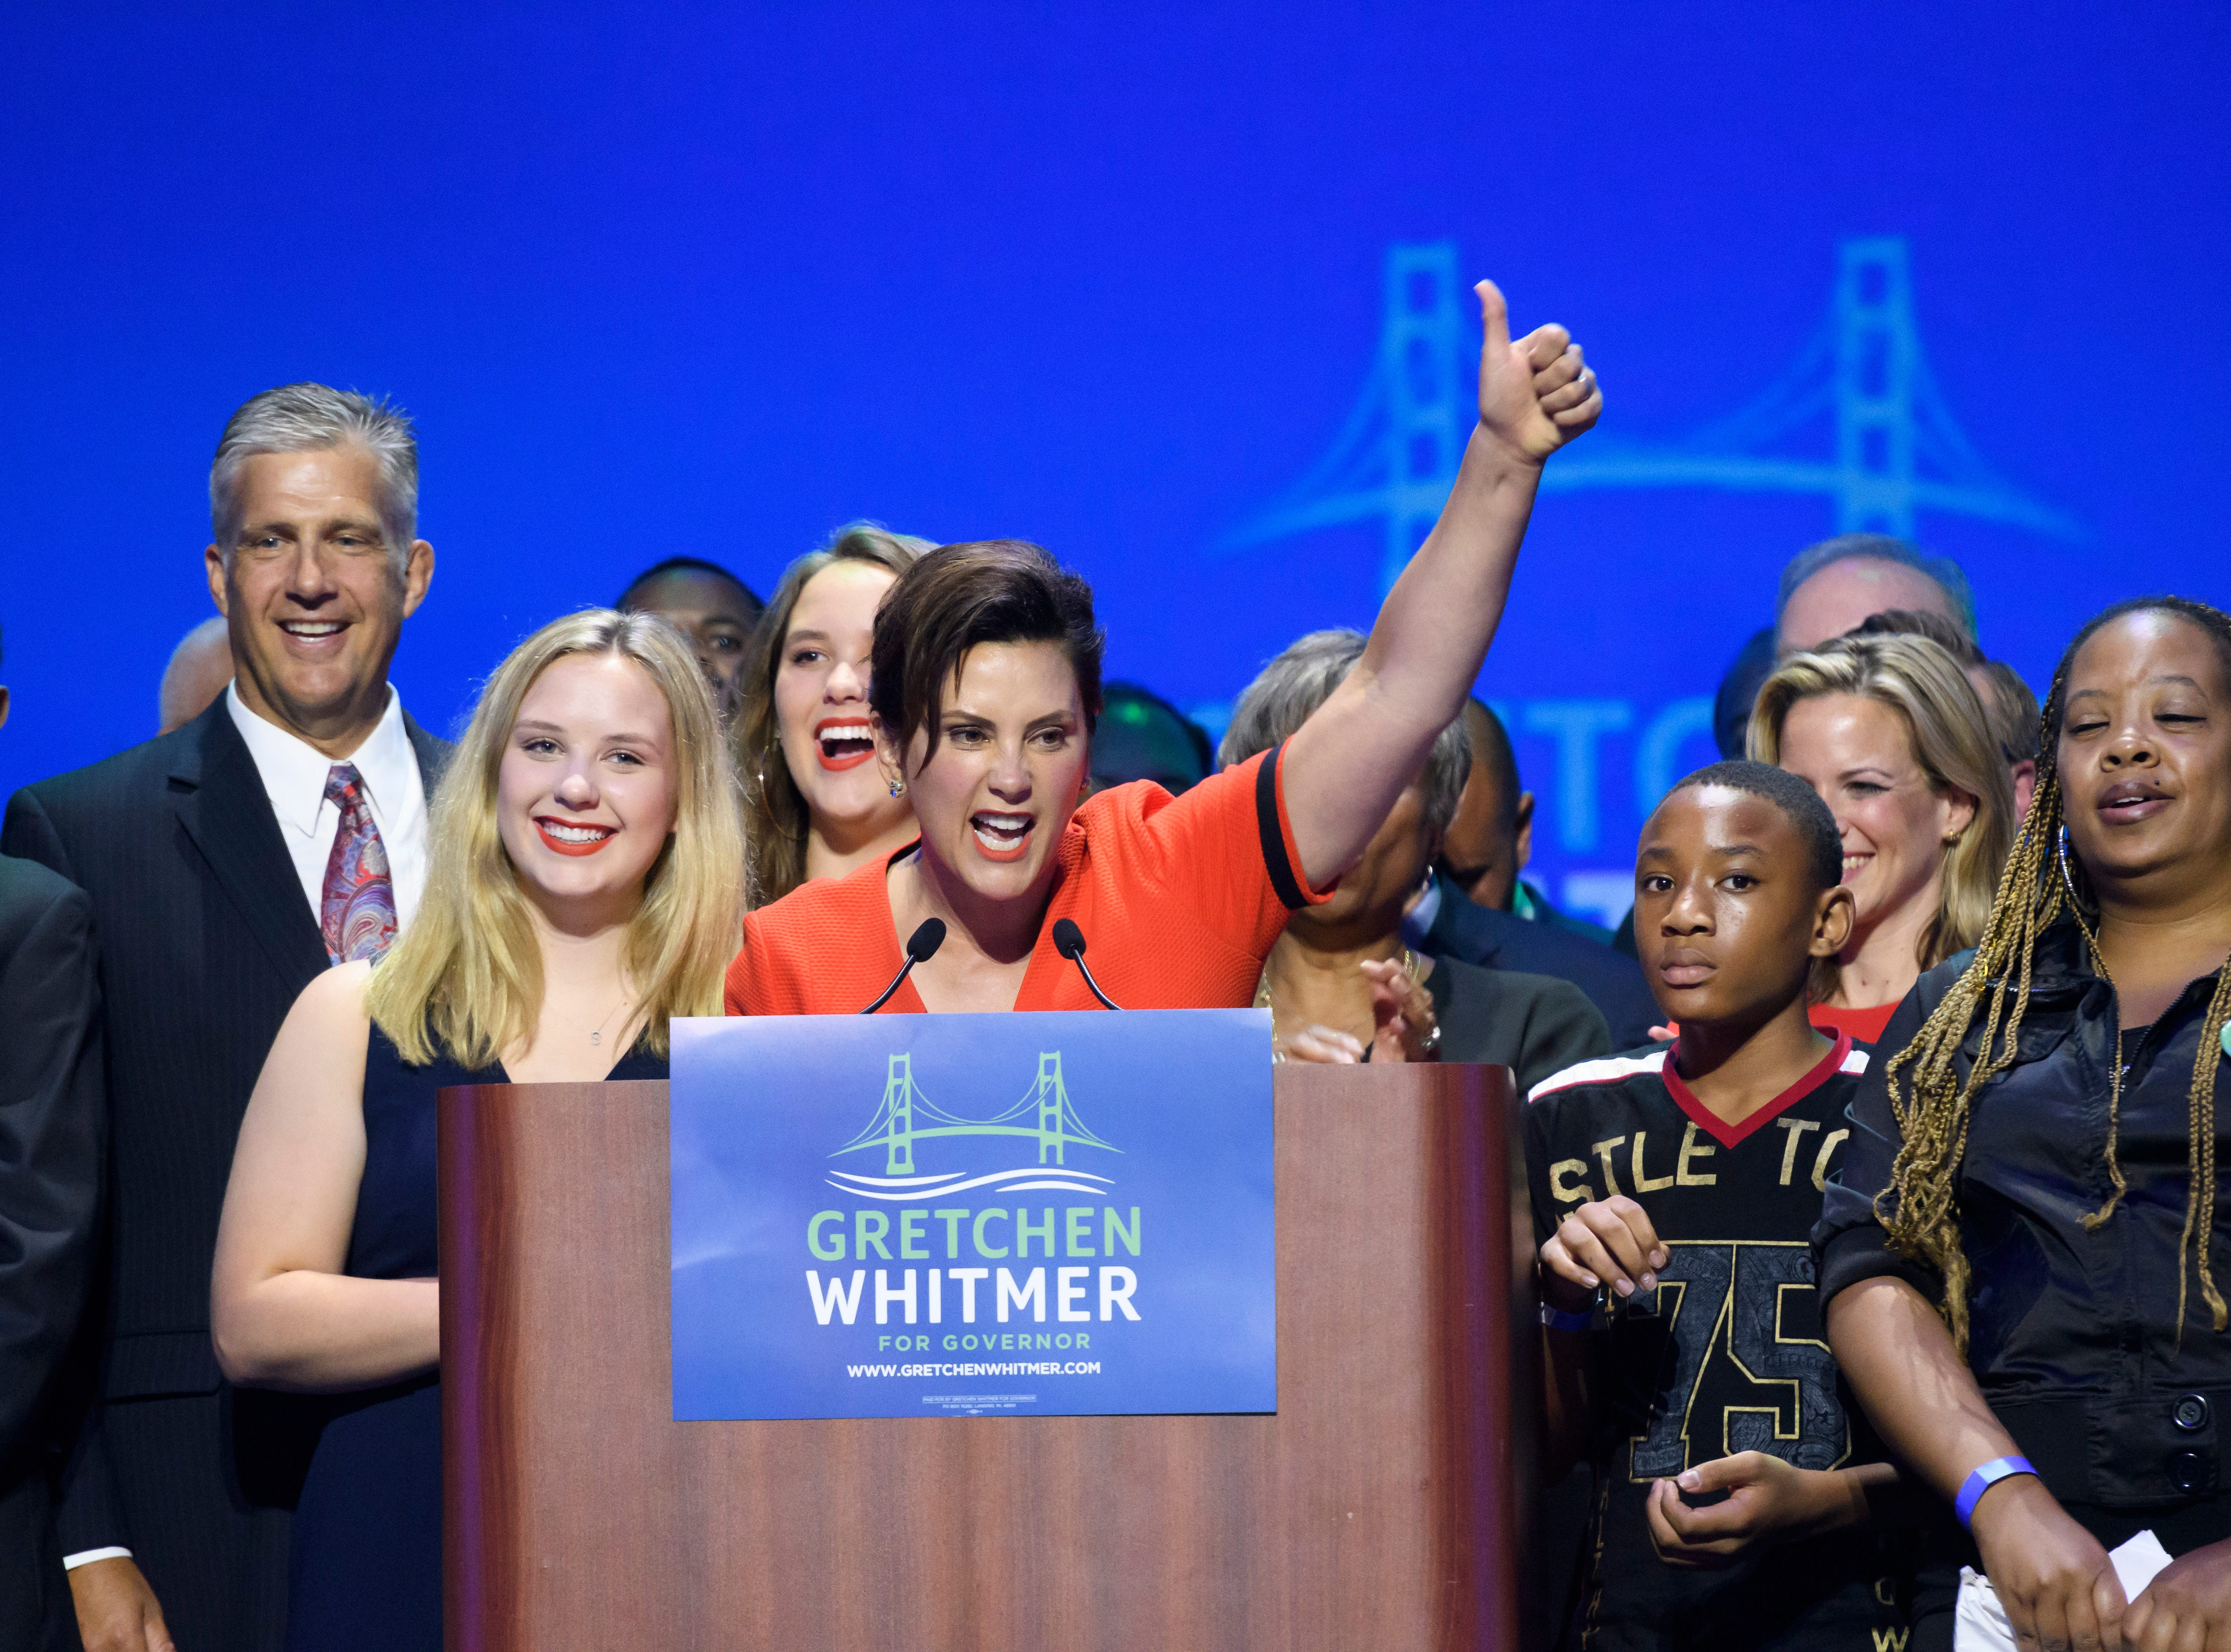 Democratic gubernatorial candidate for Michigan governor Gretchen Whitmer  gives her victory speech at her election night party at the Motor City Casino in Detroit.